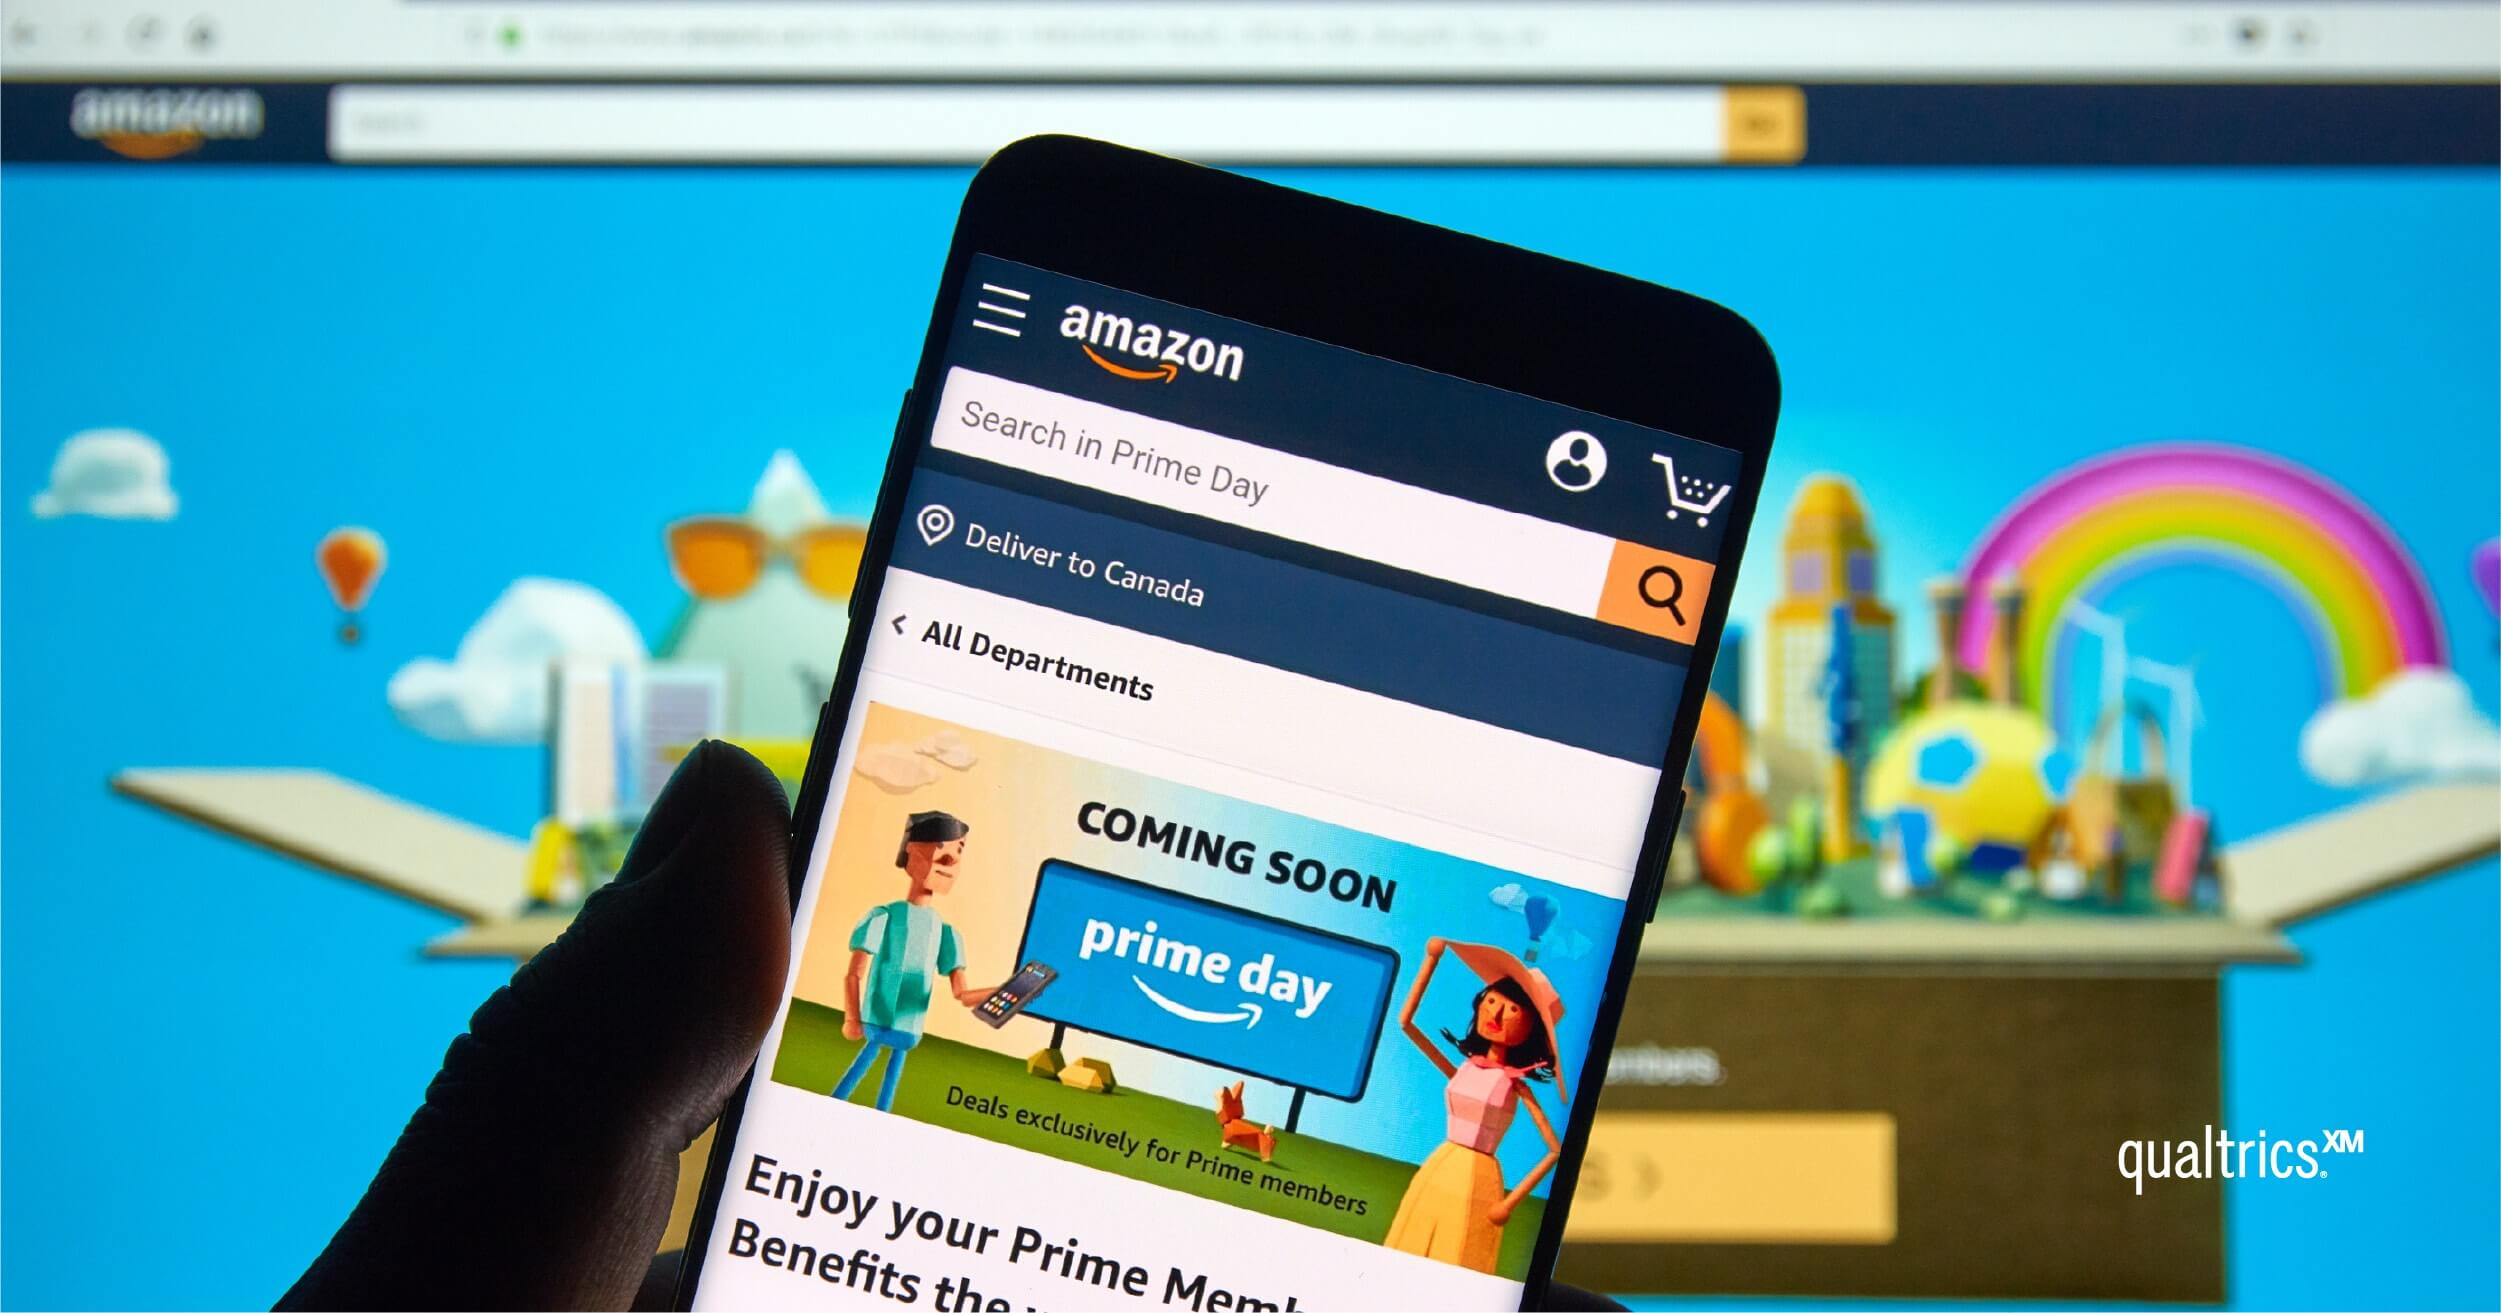 Why Amazon is A Leader in Customer Experience